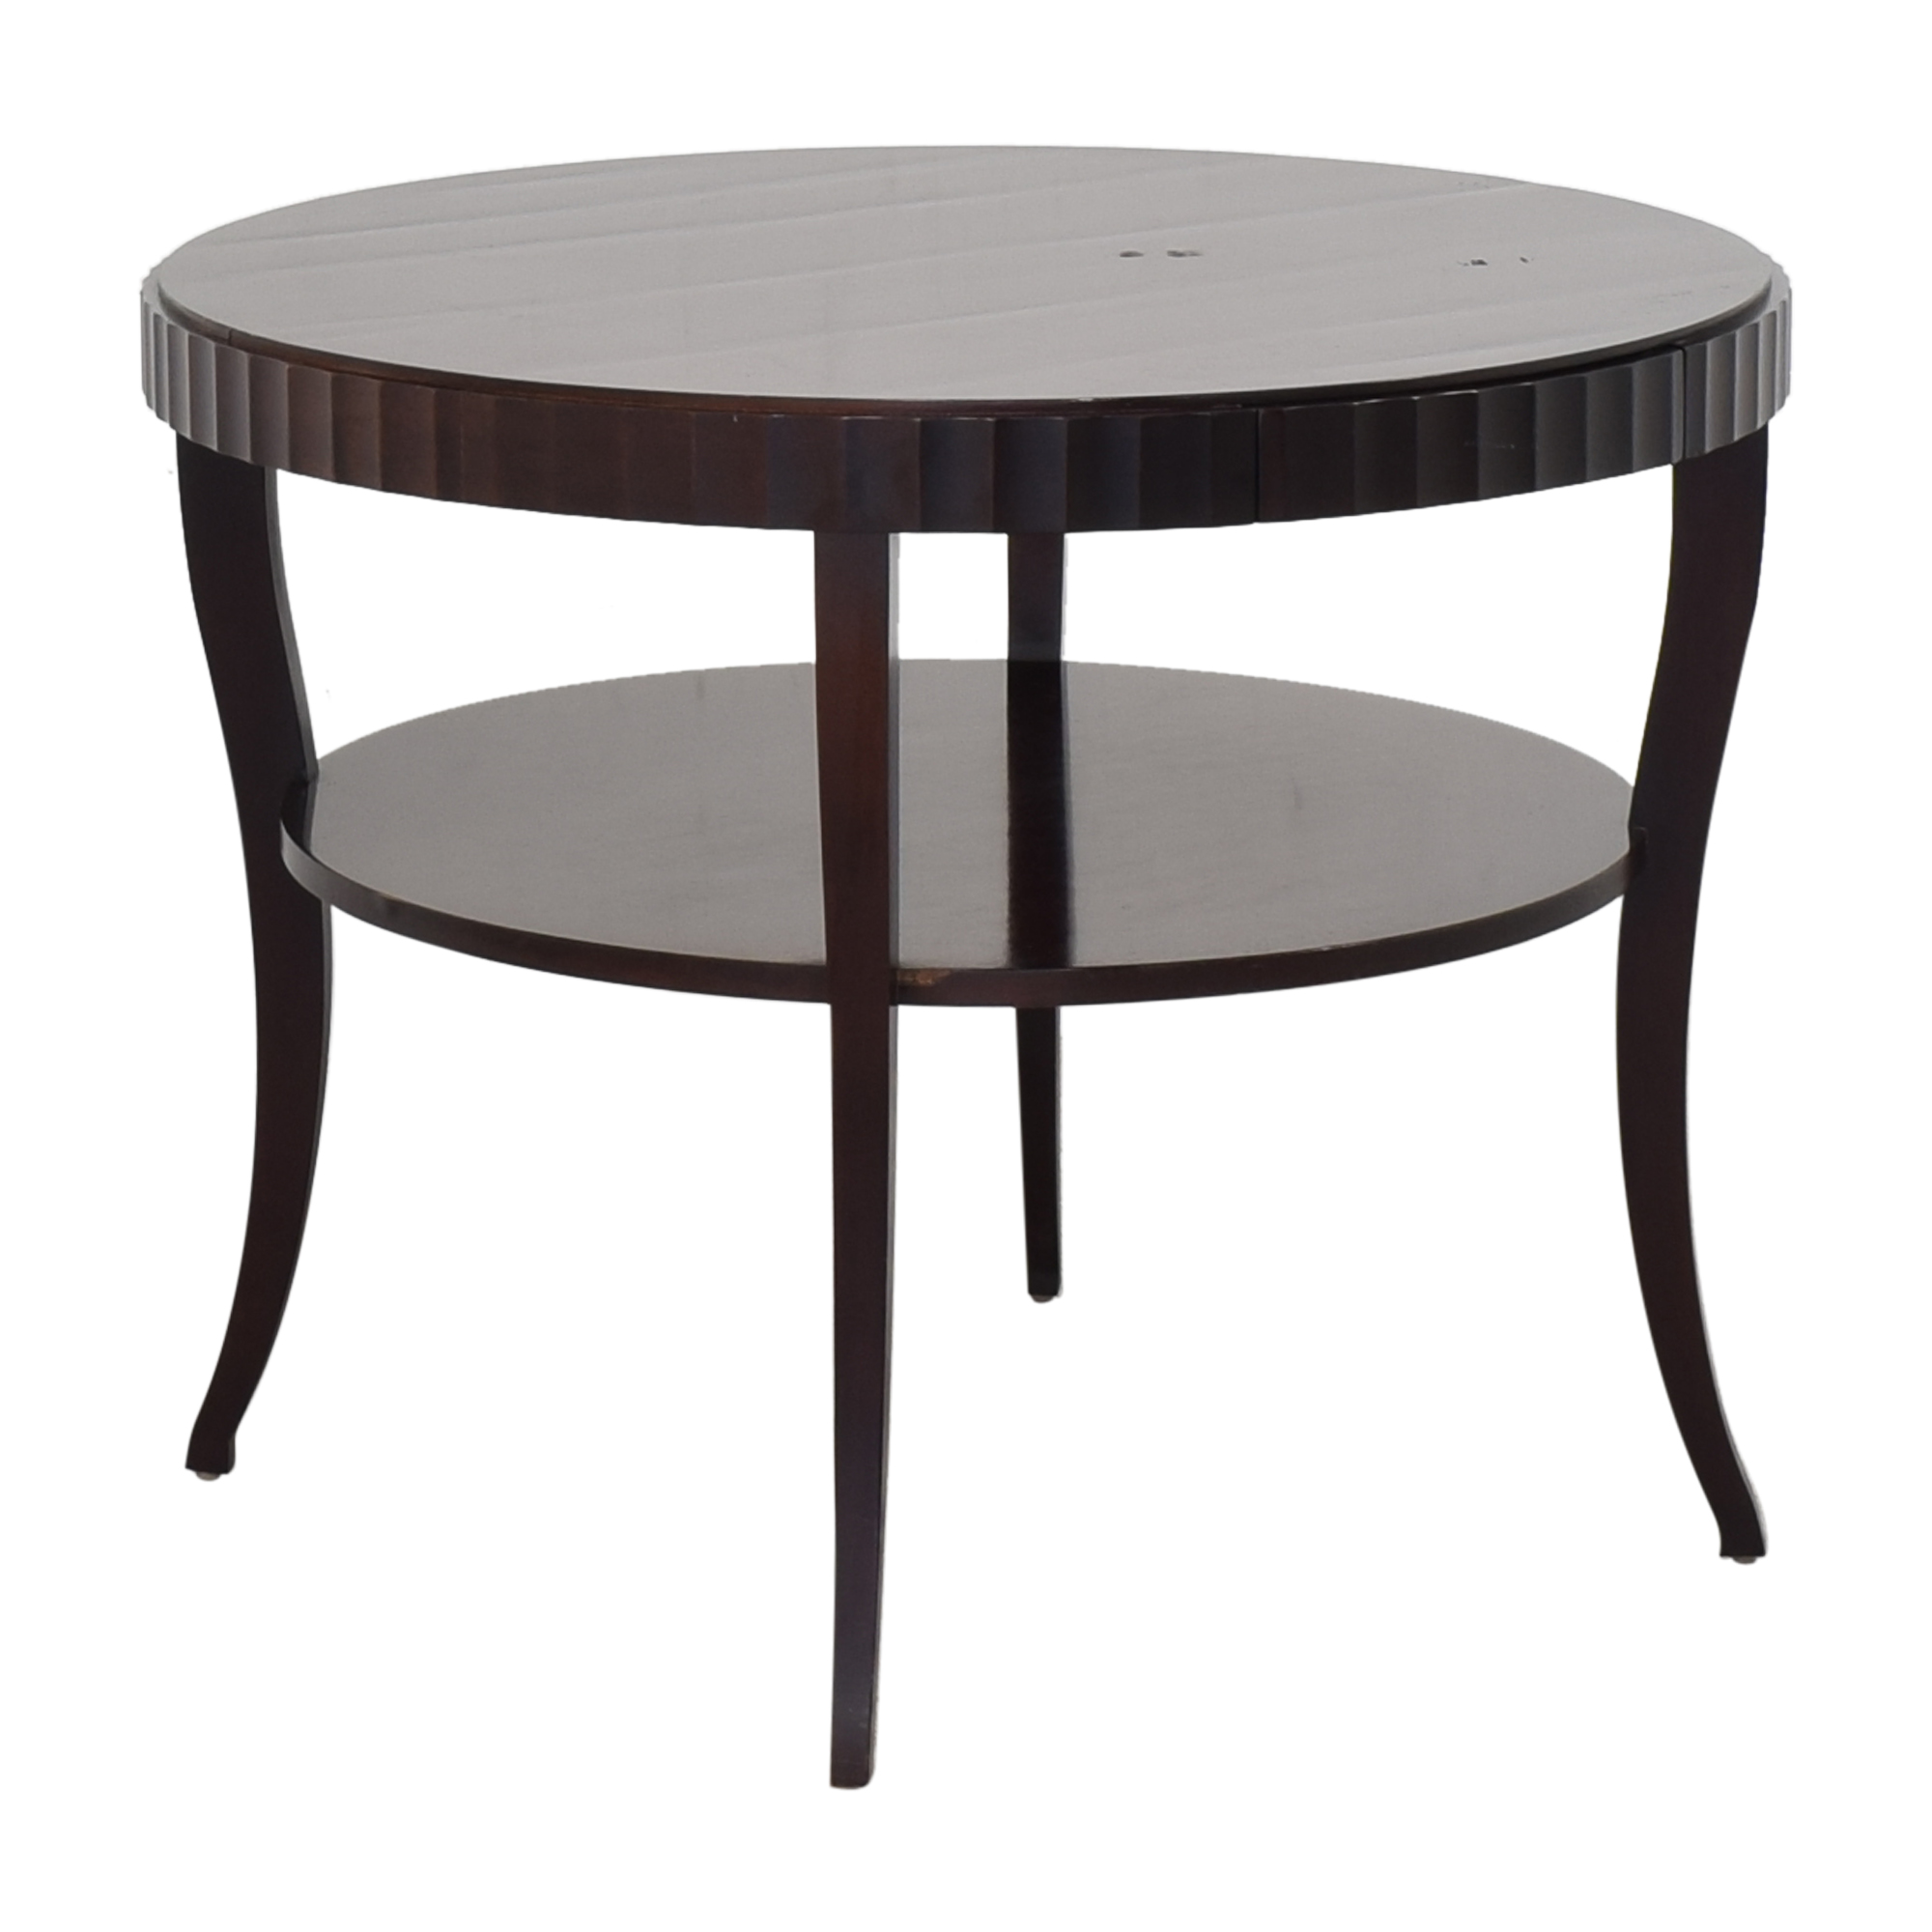 Baker Furniture Baker Furniture Round End Table nyc